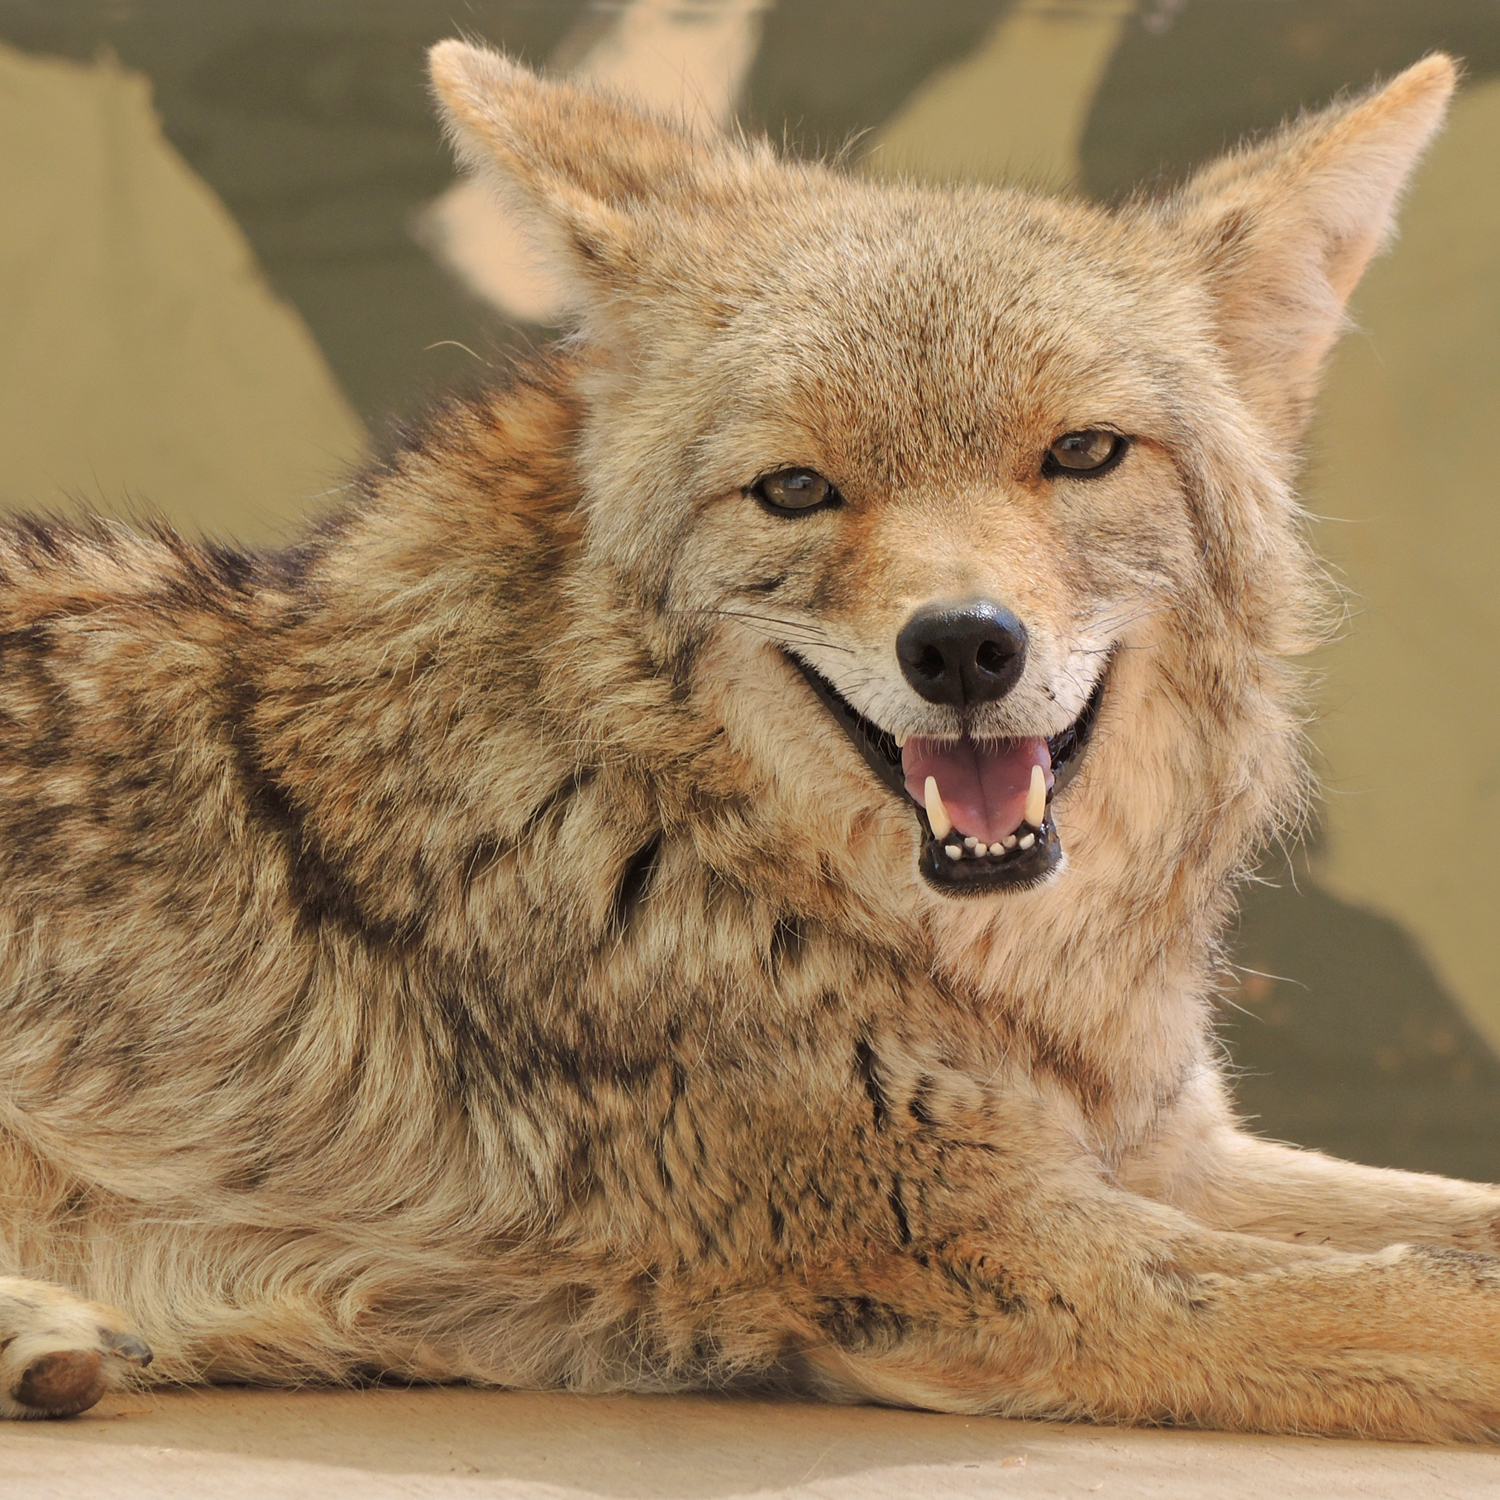 Shorty Coyote